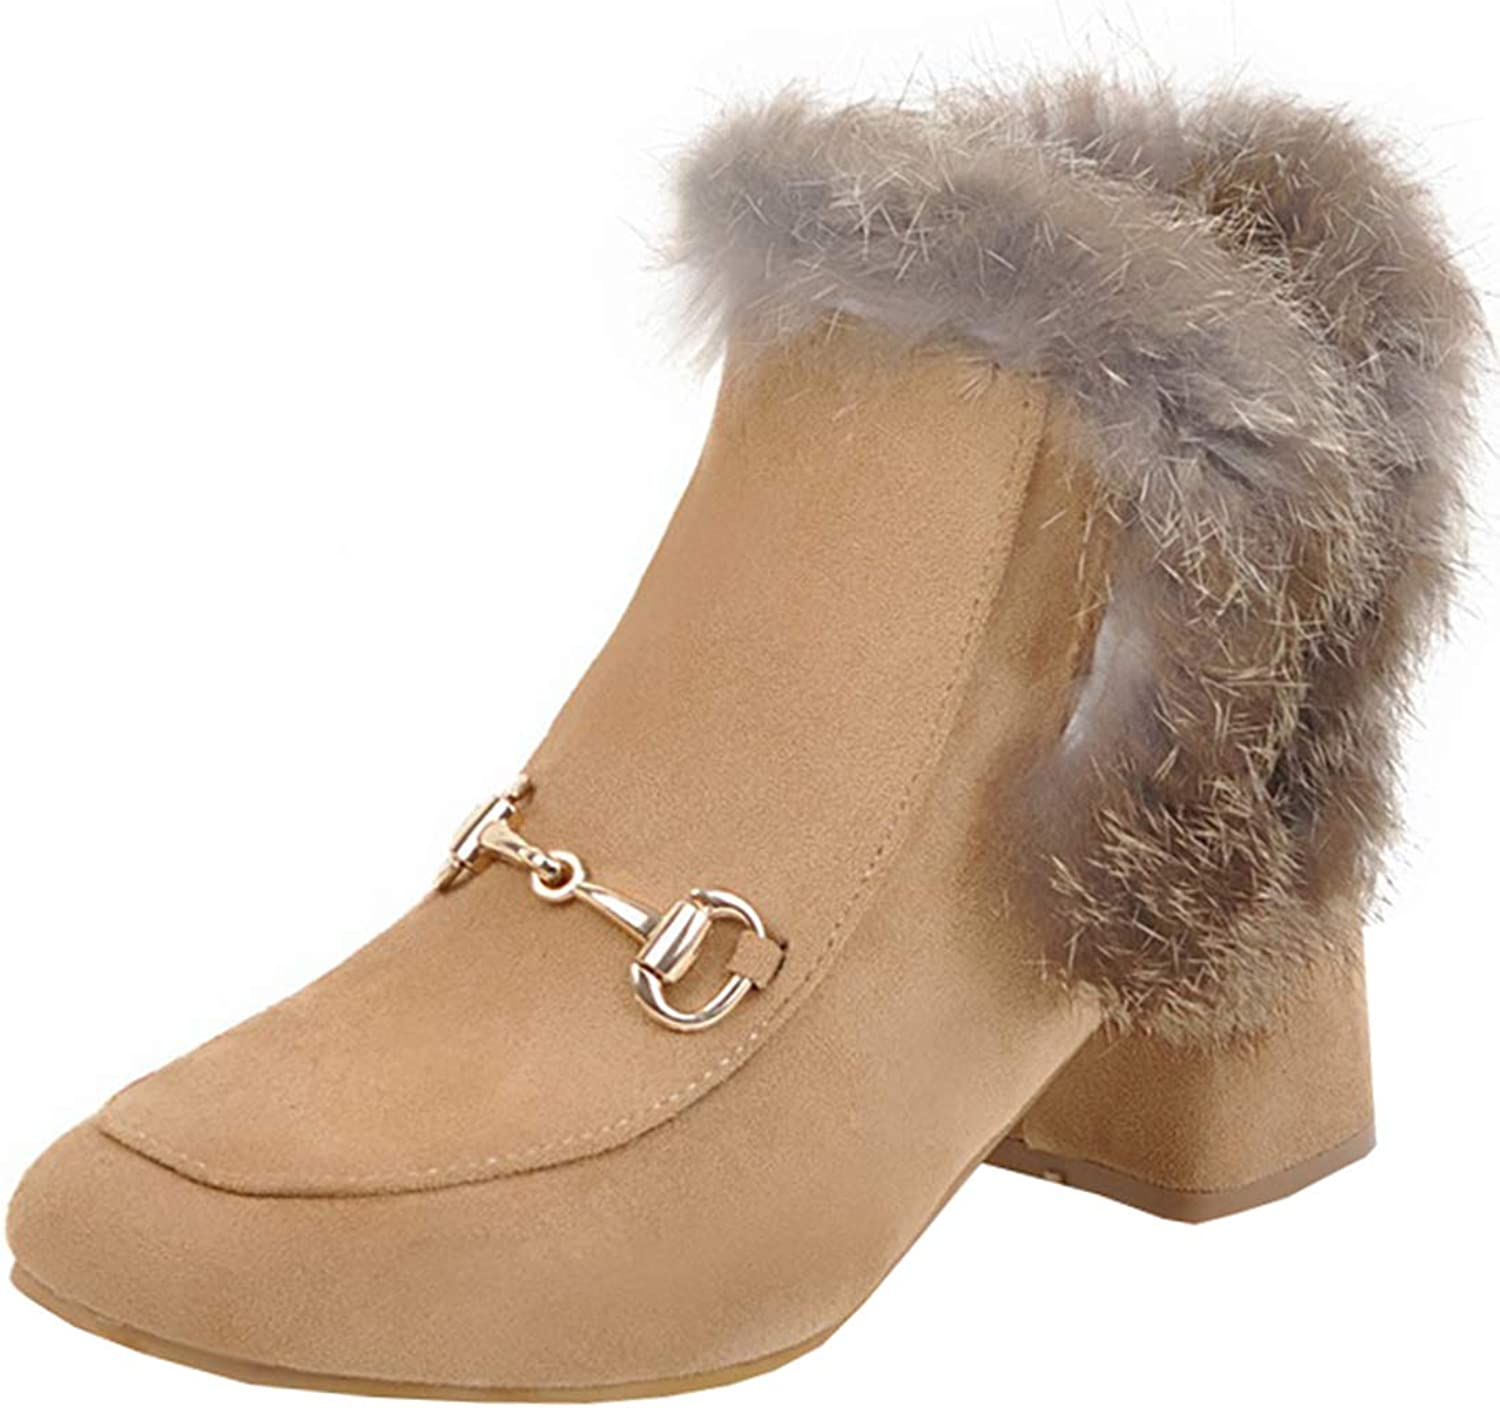 Artfaerie Womens Chunky Heel Ankle Boots Faxu Fur Boots Block Mid Heel Booties Warm shoes